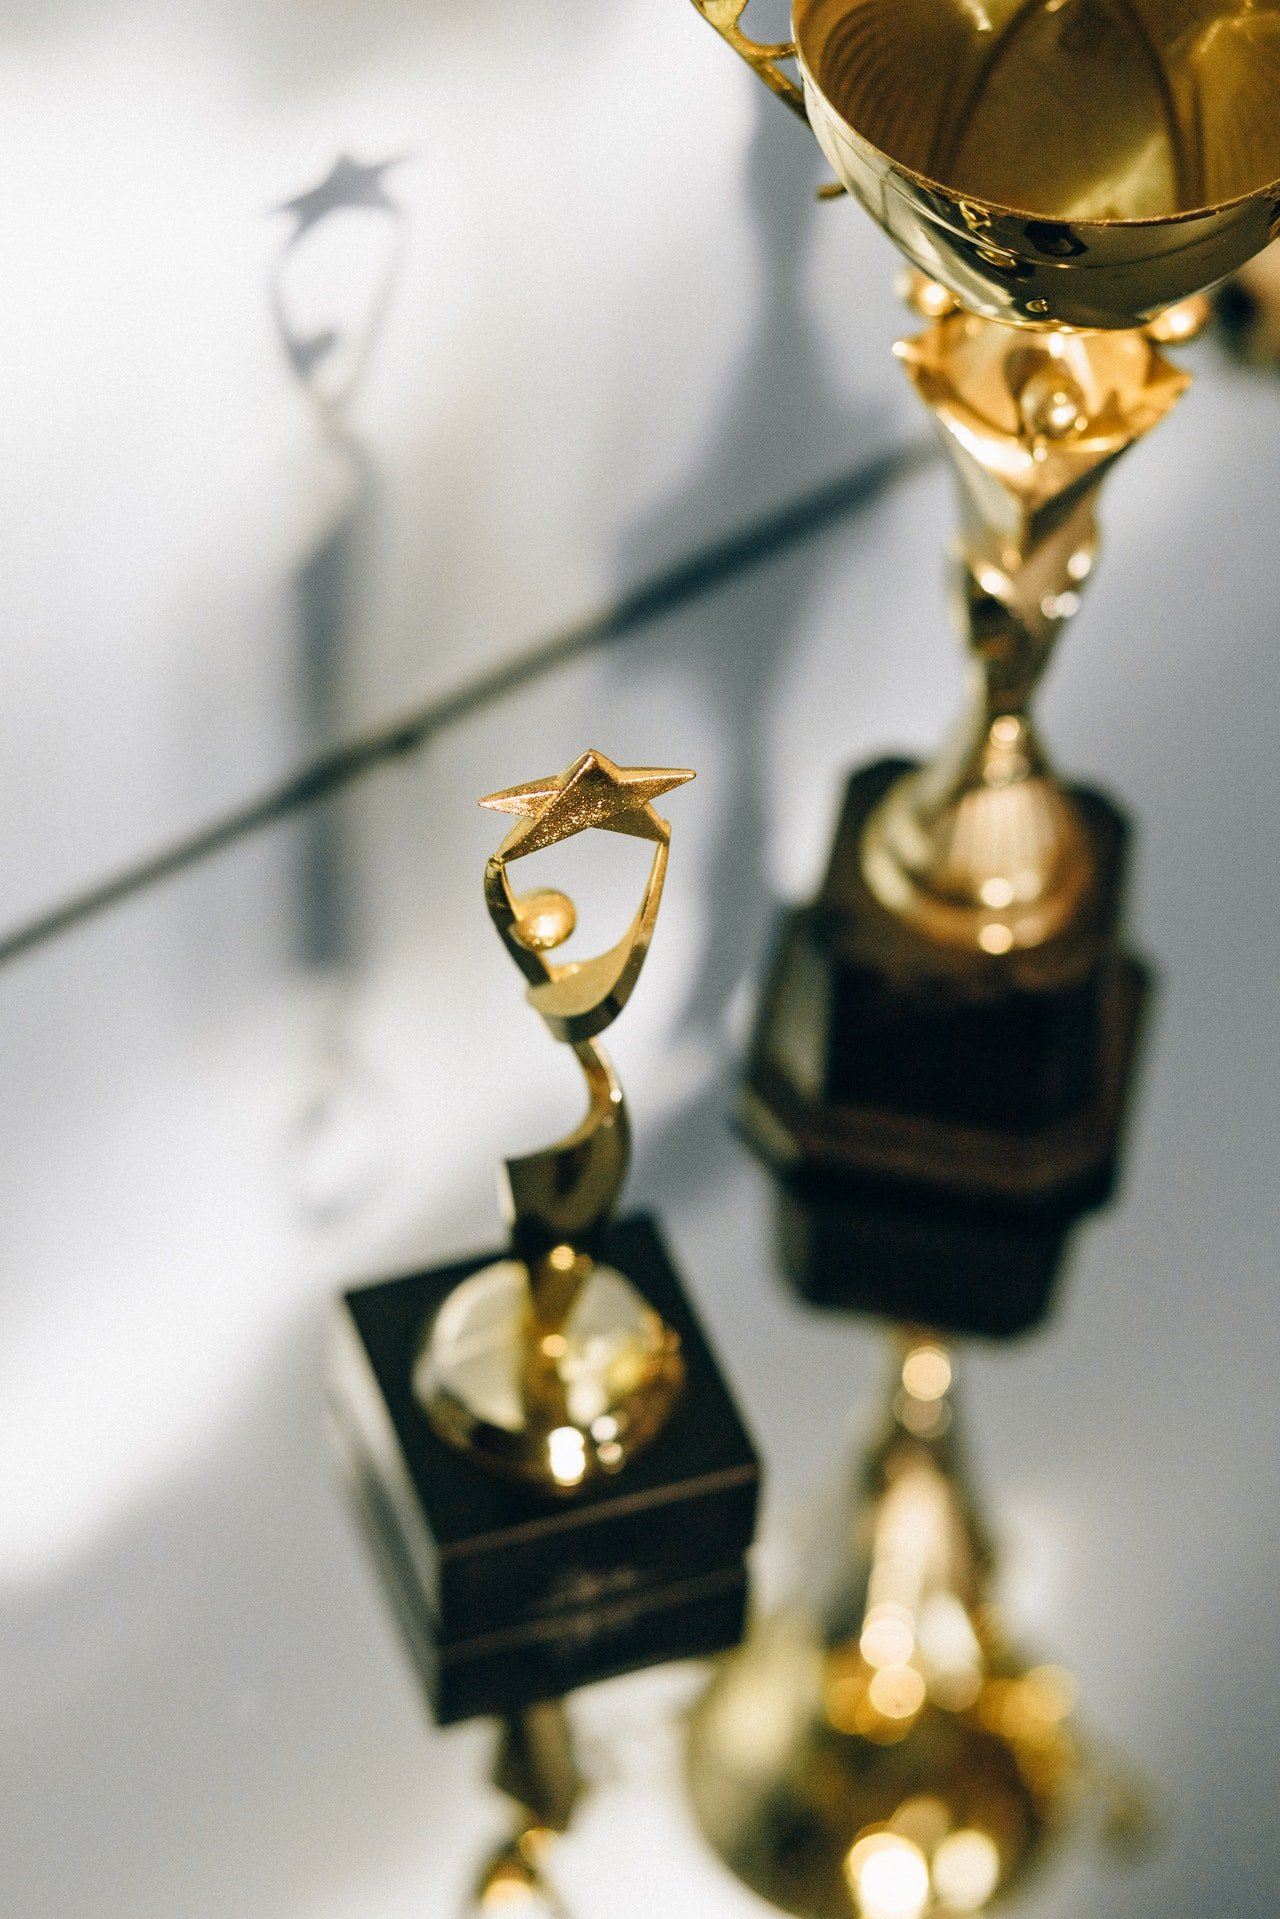 Jeremiah won the award and the prize money. | Source: Pexels